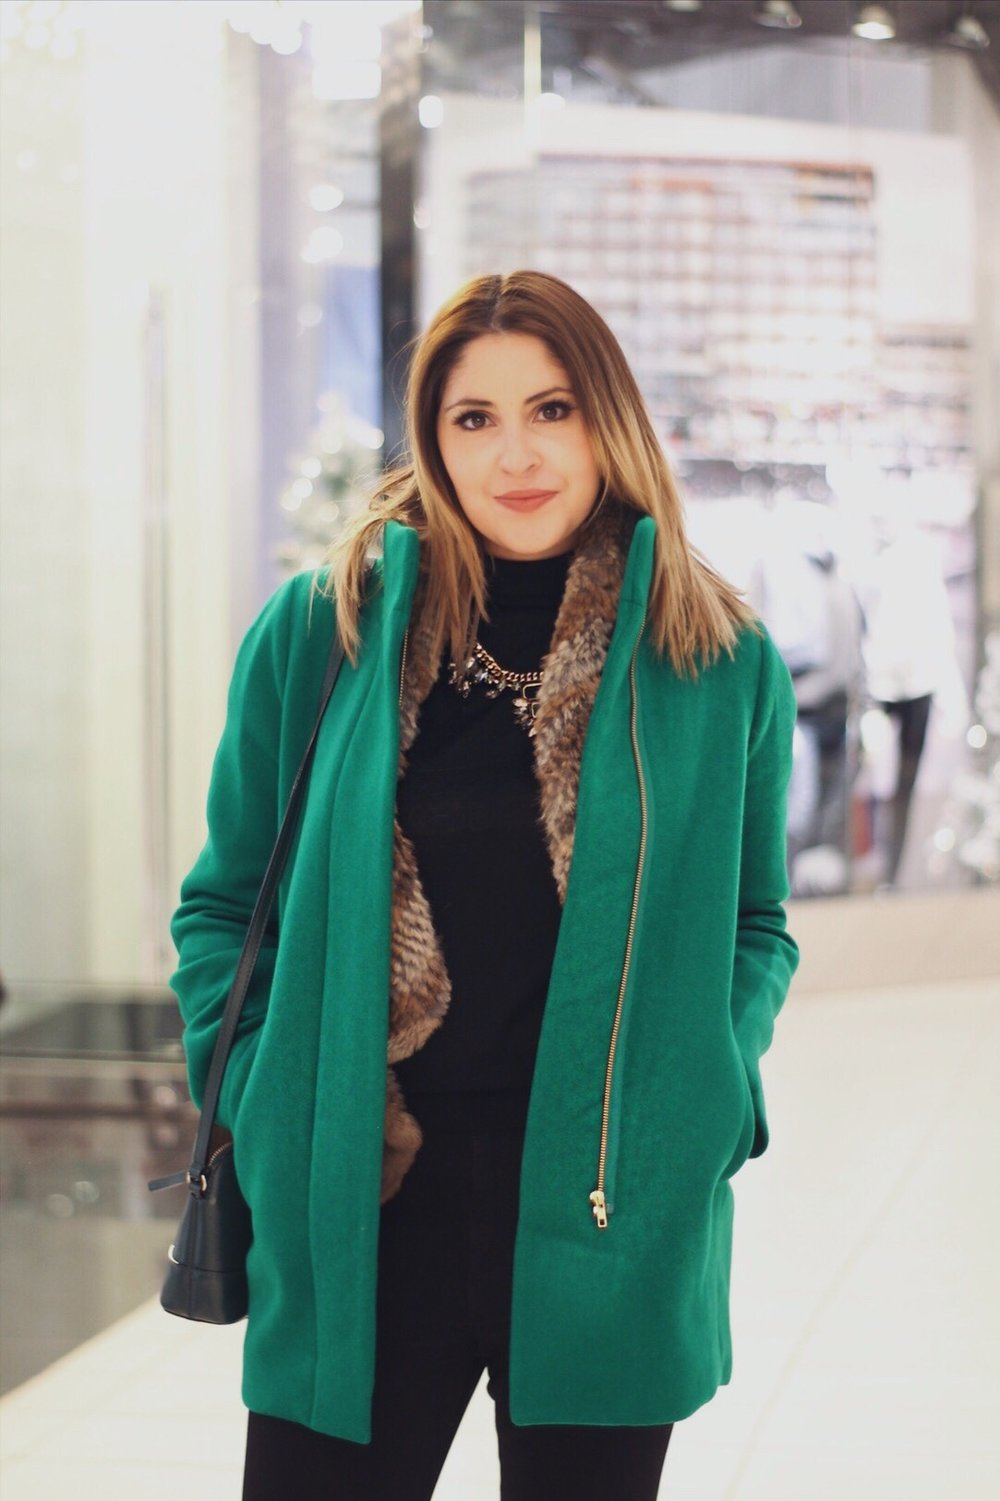 Coat & Turtleneck – JCrew Fur vest & Necklace – Saks off 5th Jeggings – Levis Purse – Kate Spade